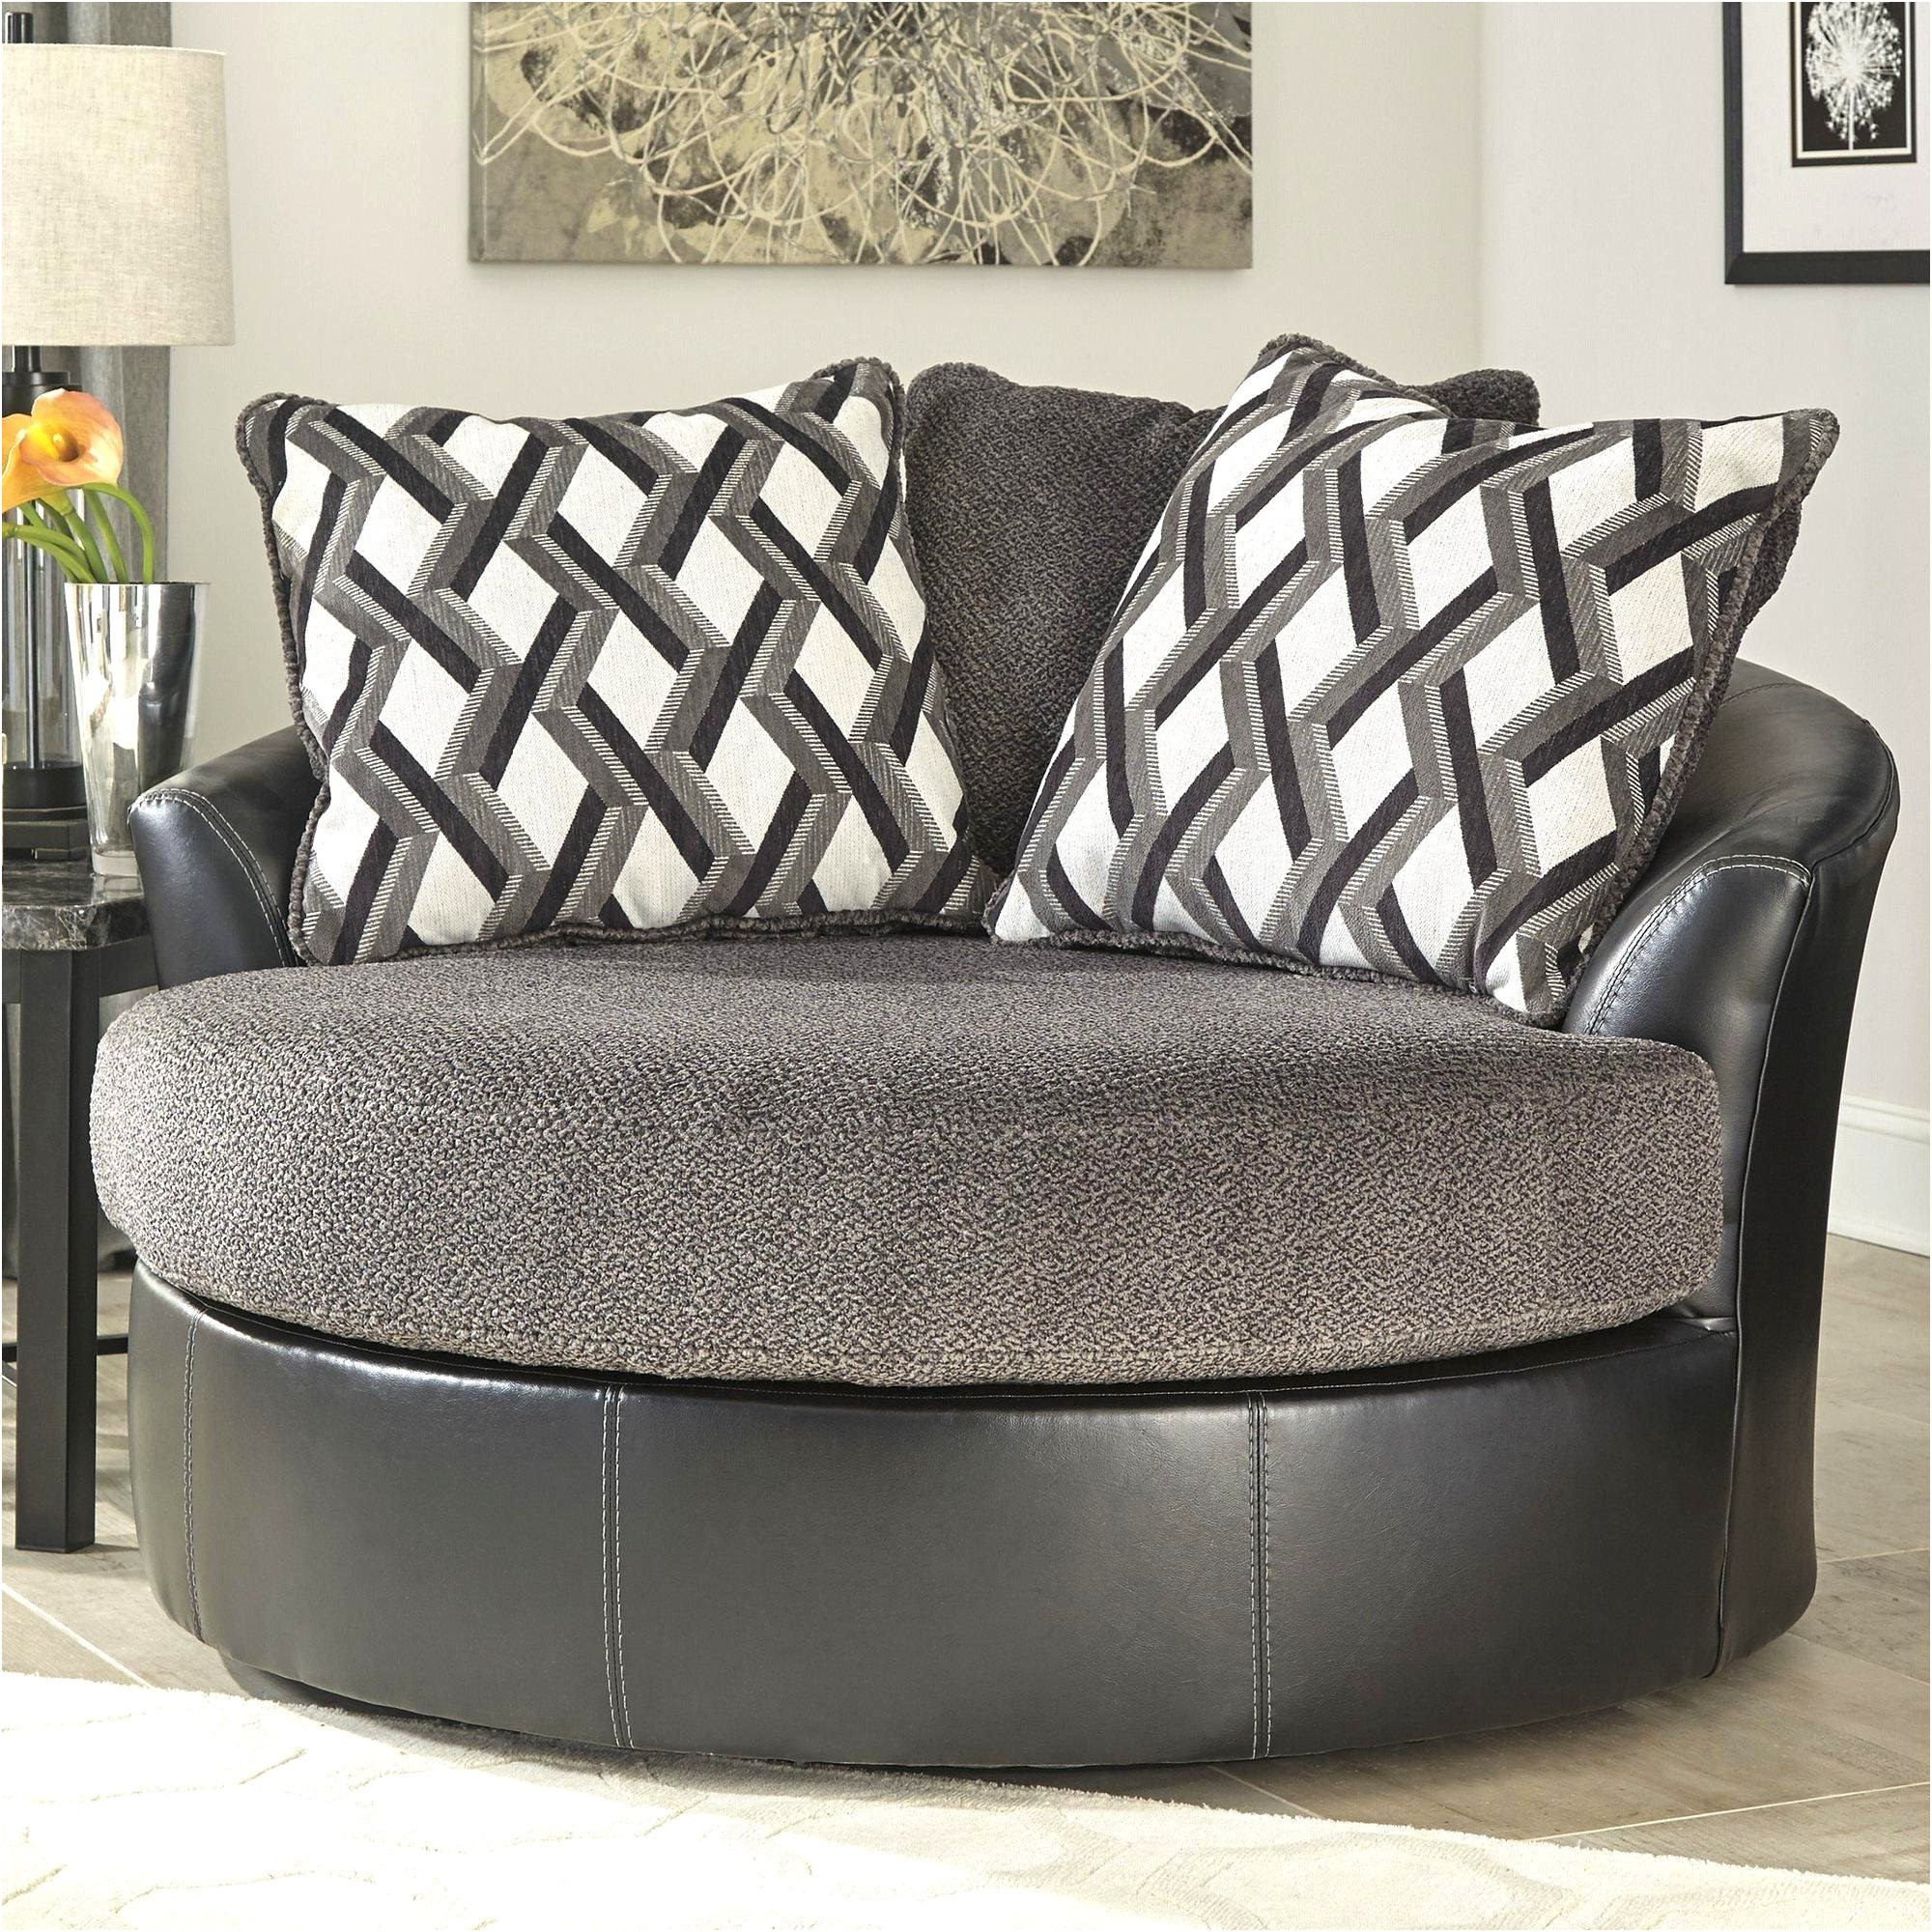 Sofas Relax Ikea Bqdd Sillones Relax Sharon Leal